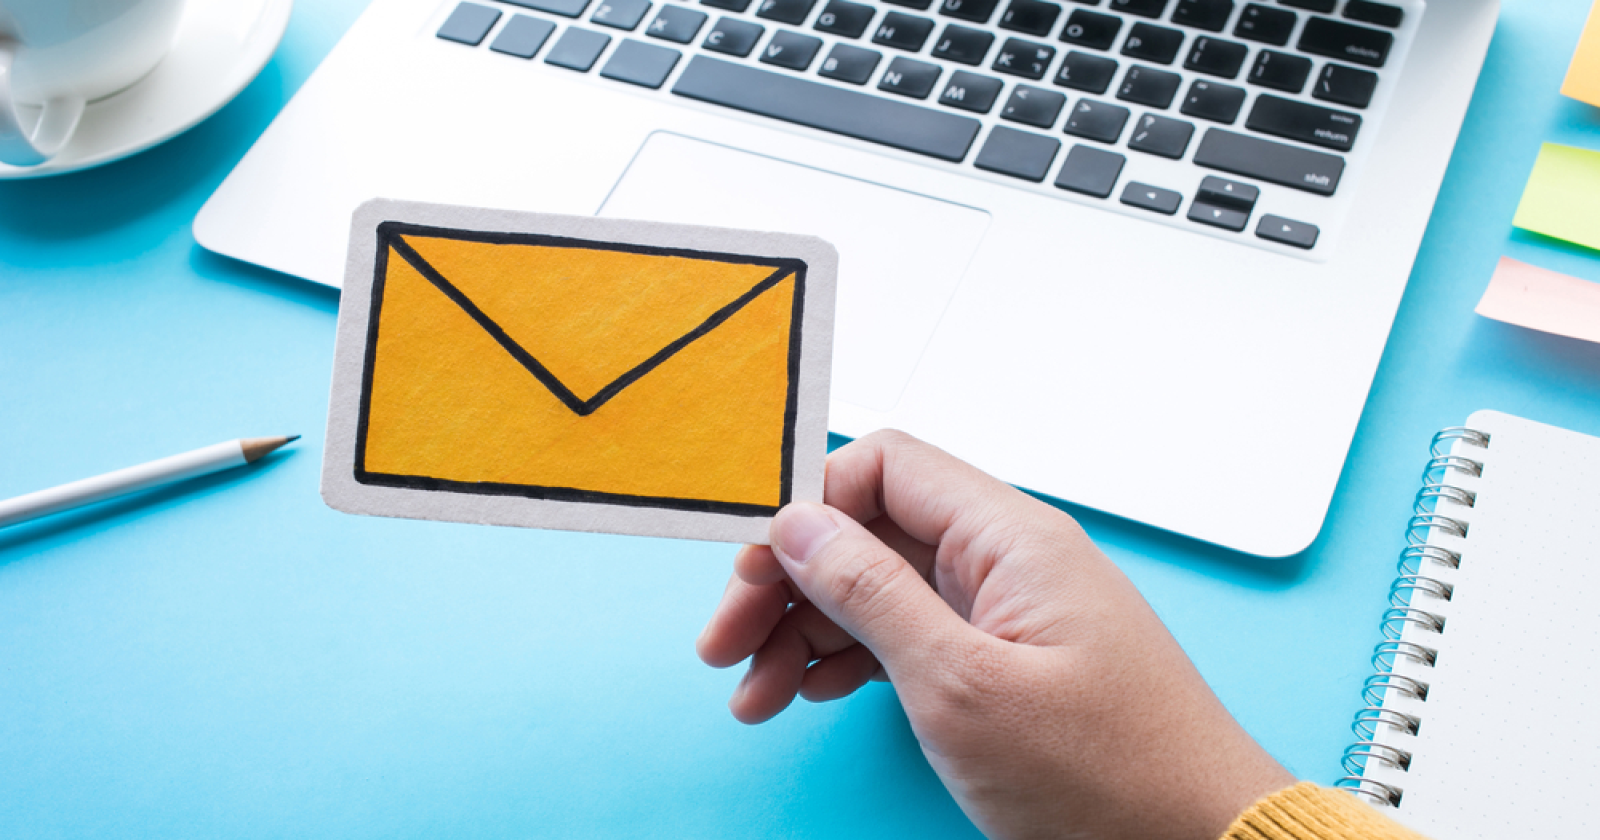 Email marketing helps to engage more customers